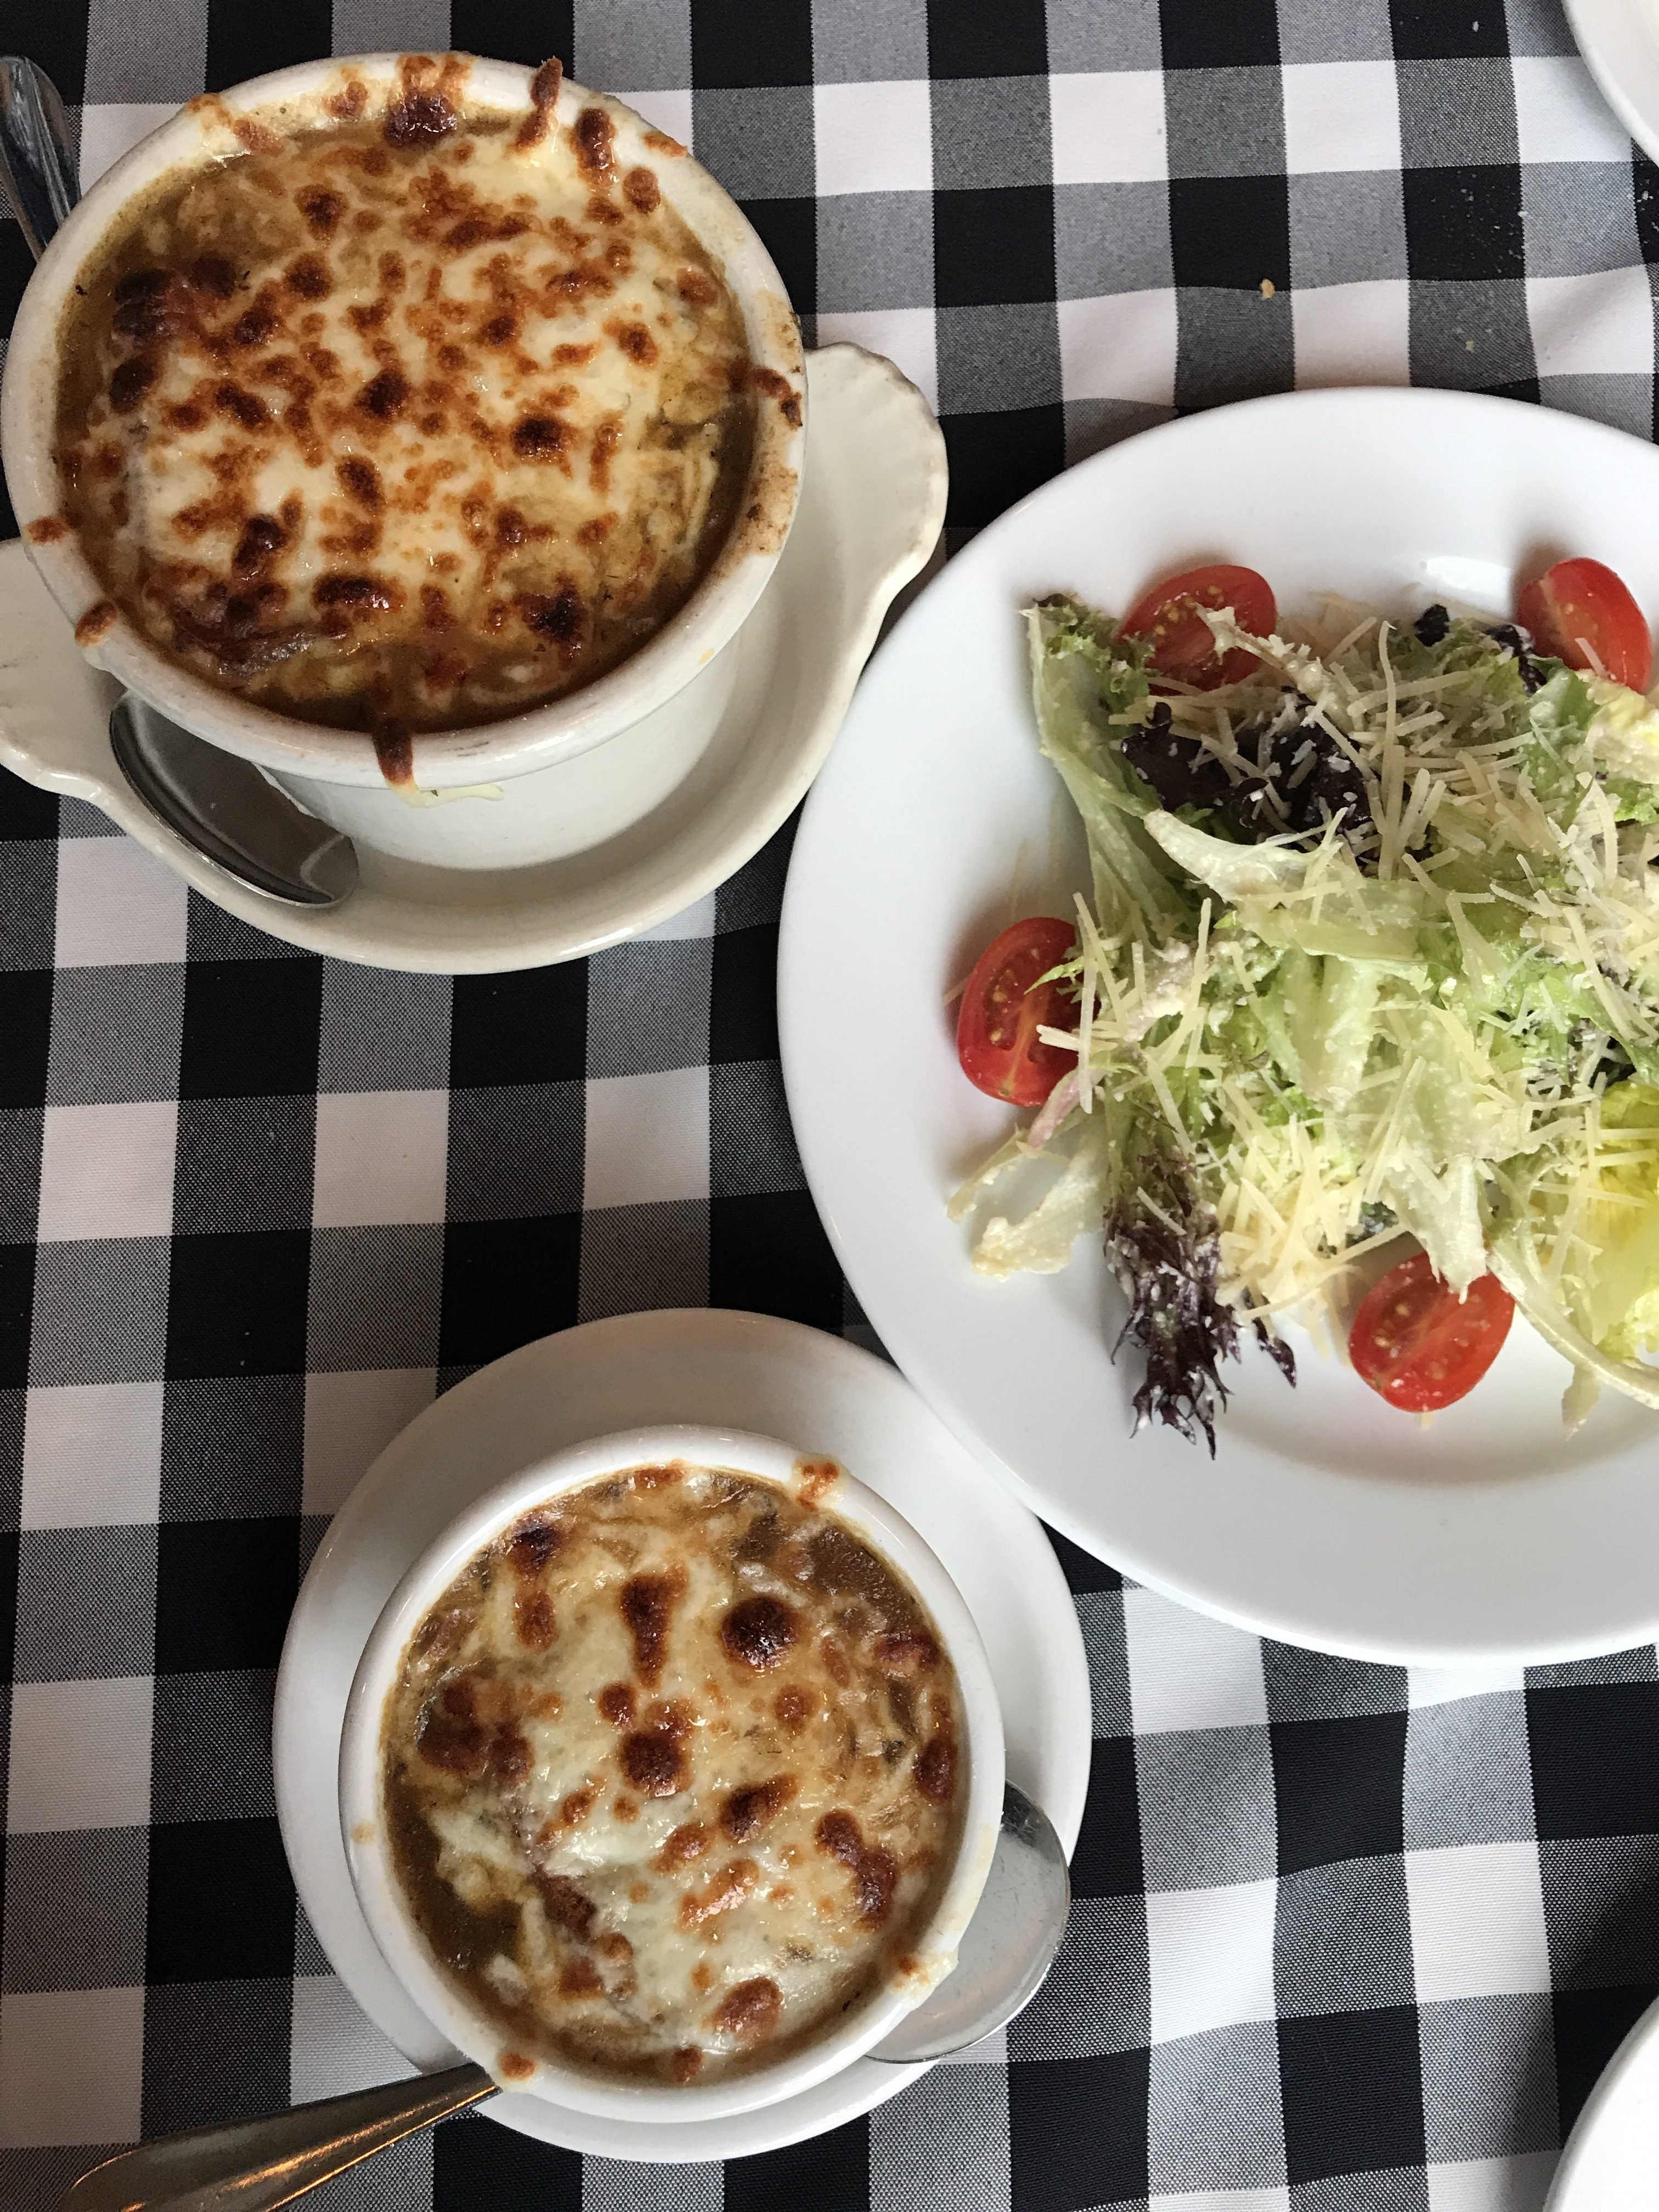 Recently I Discovered Amical An Amazing French Restaurant In Downtown Traverse City Michigan